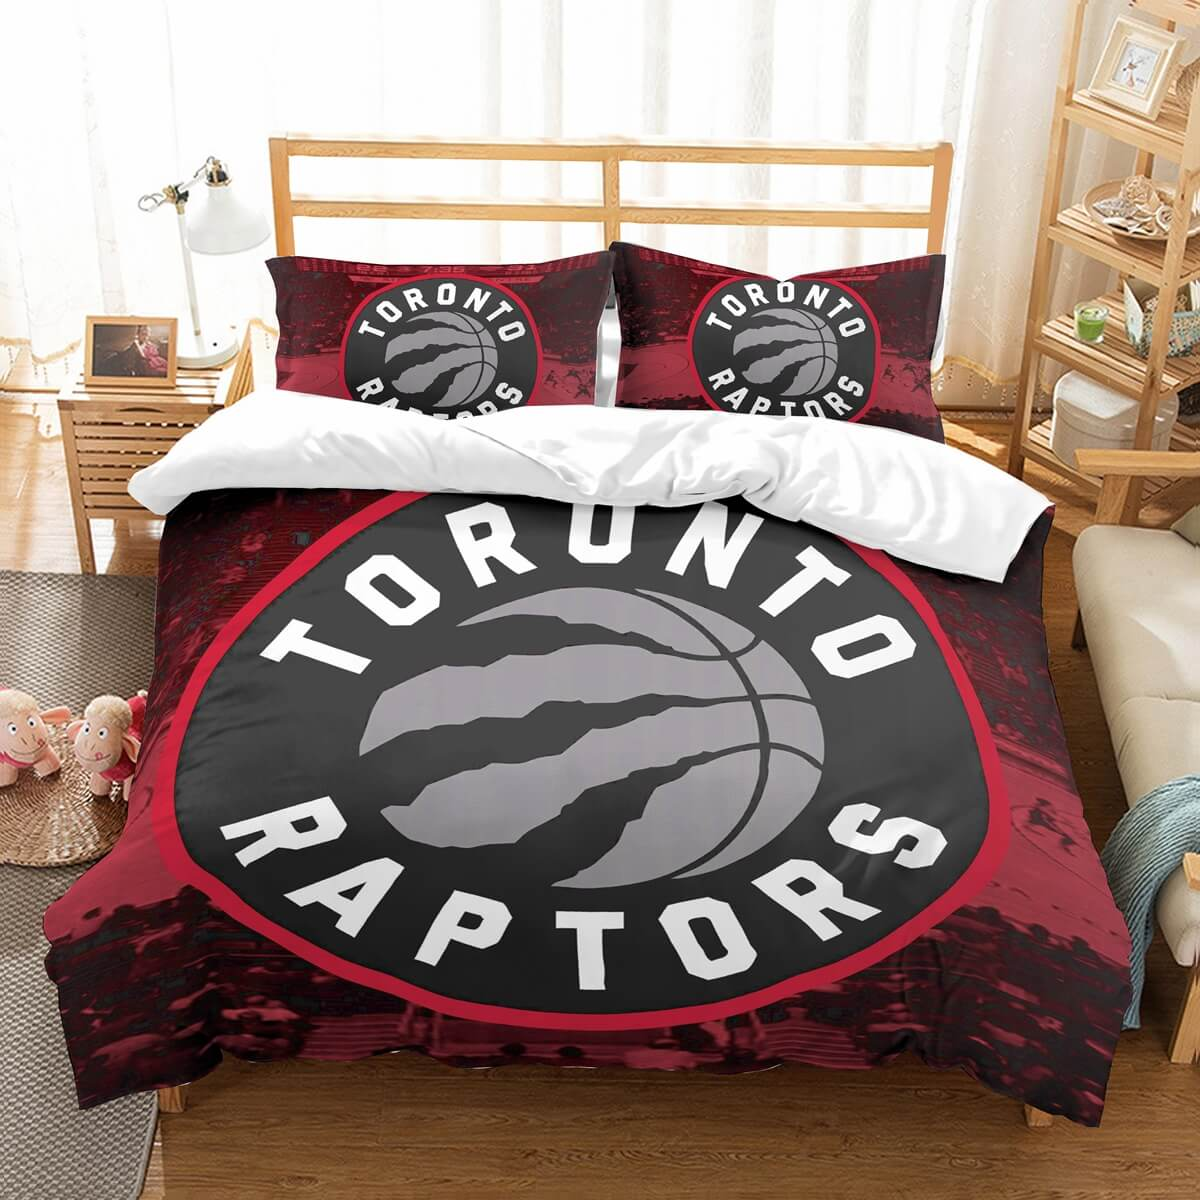 3D Customize Toronto Raptors Bedding Set Duvet Cover Set Bedroom Set Bedlinen